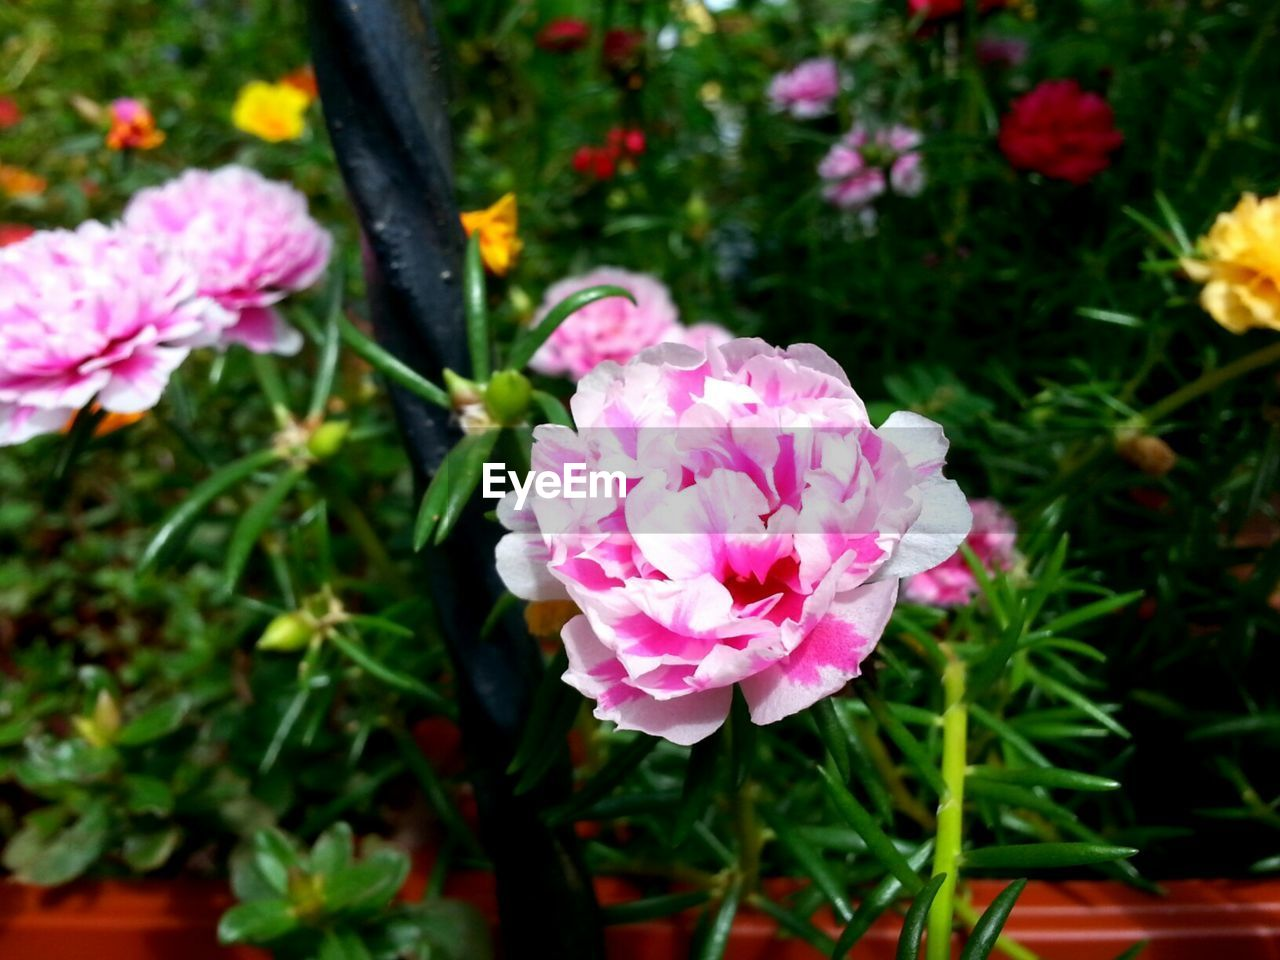 flower, growth, nature, plant, no people, pink color, beauty in nature, petal, blooming, outdoors, flower head, freshness, fragility, day, close-up